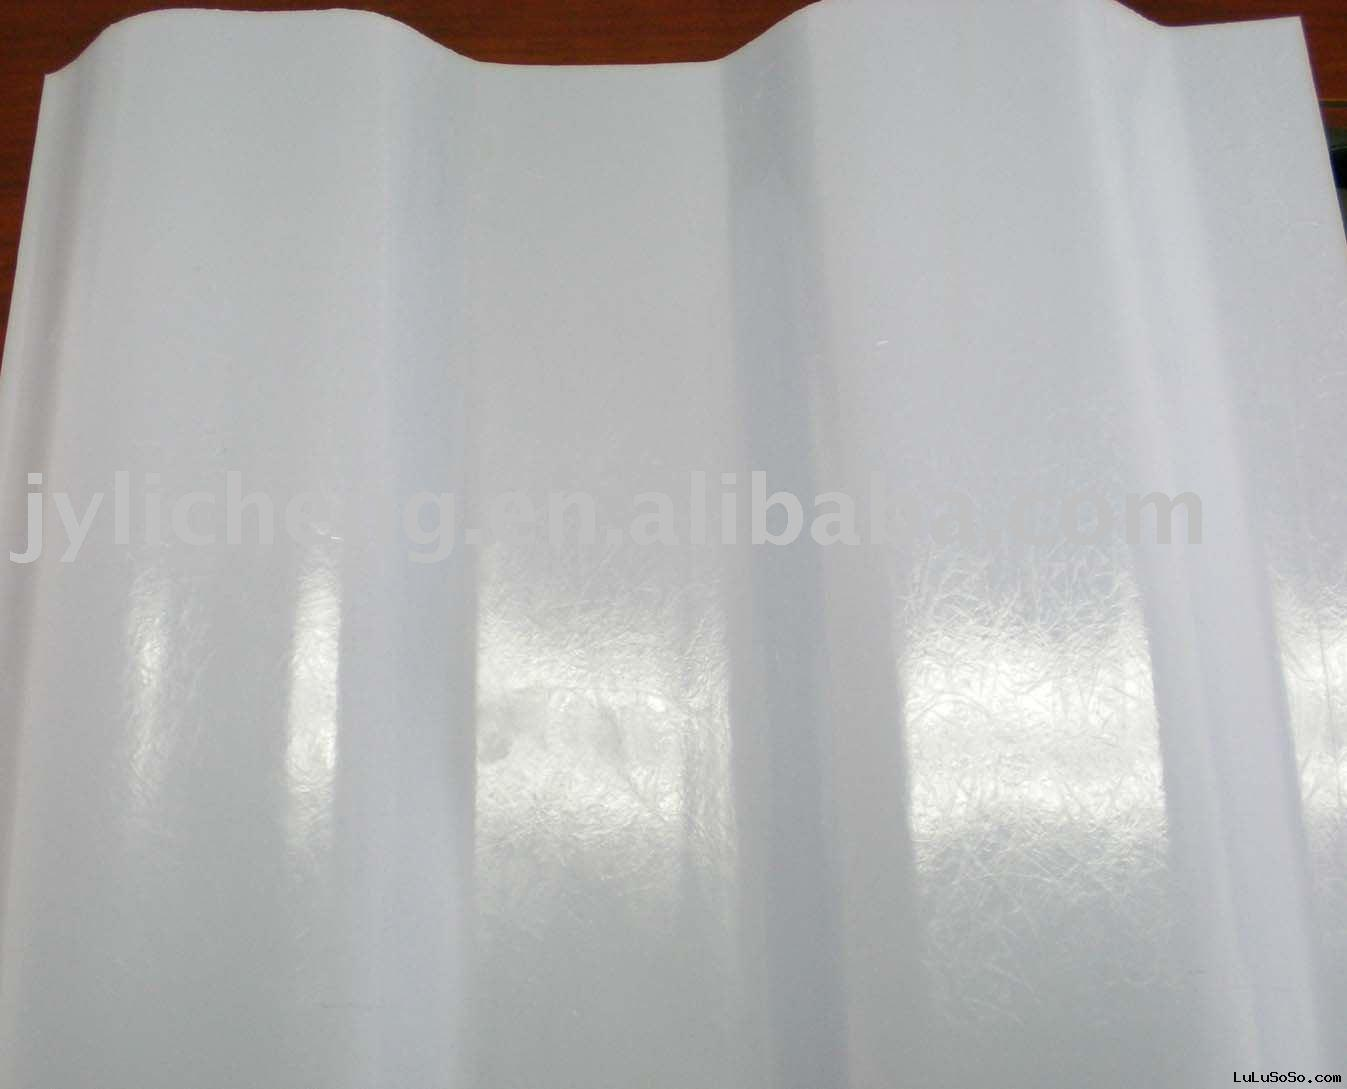 corrugated sheets supplier uae, corrugated sheets supplier uae Manufacturers in LuLuSoSo.com ...